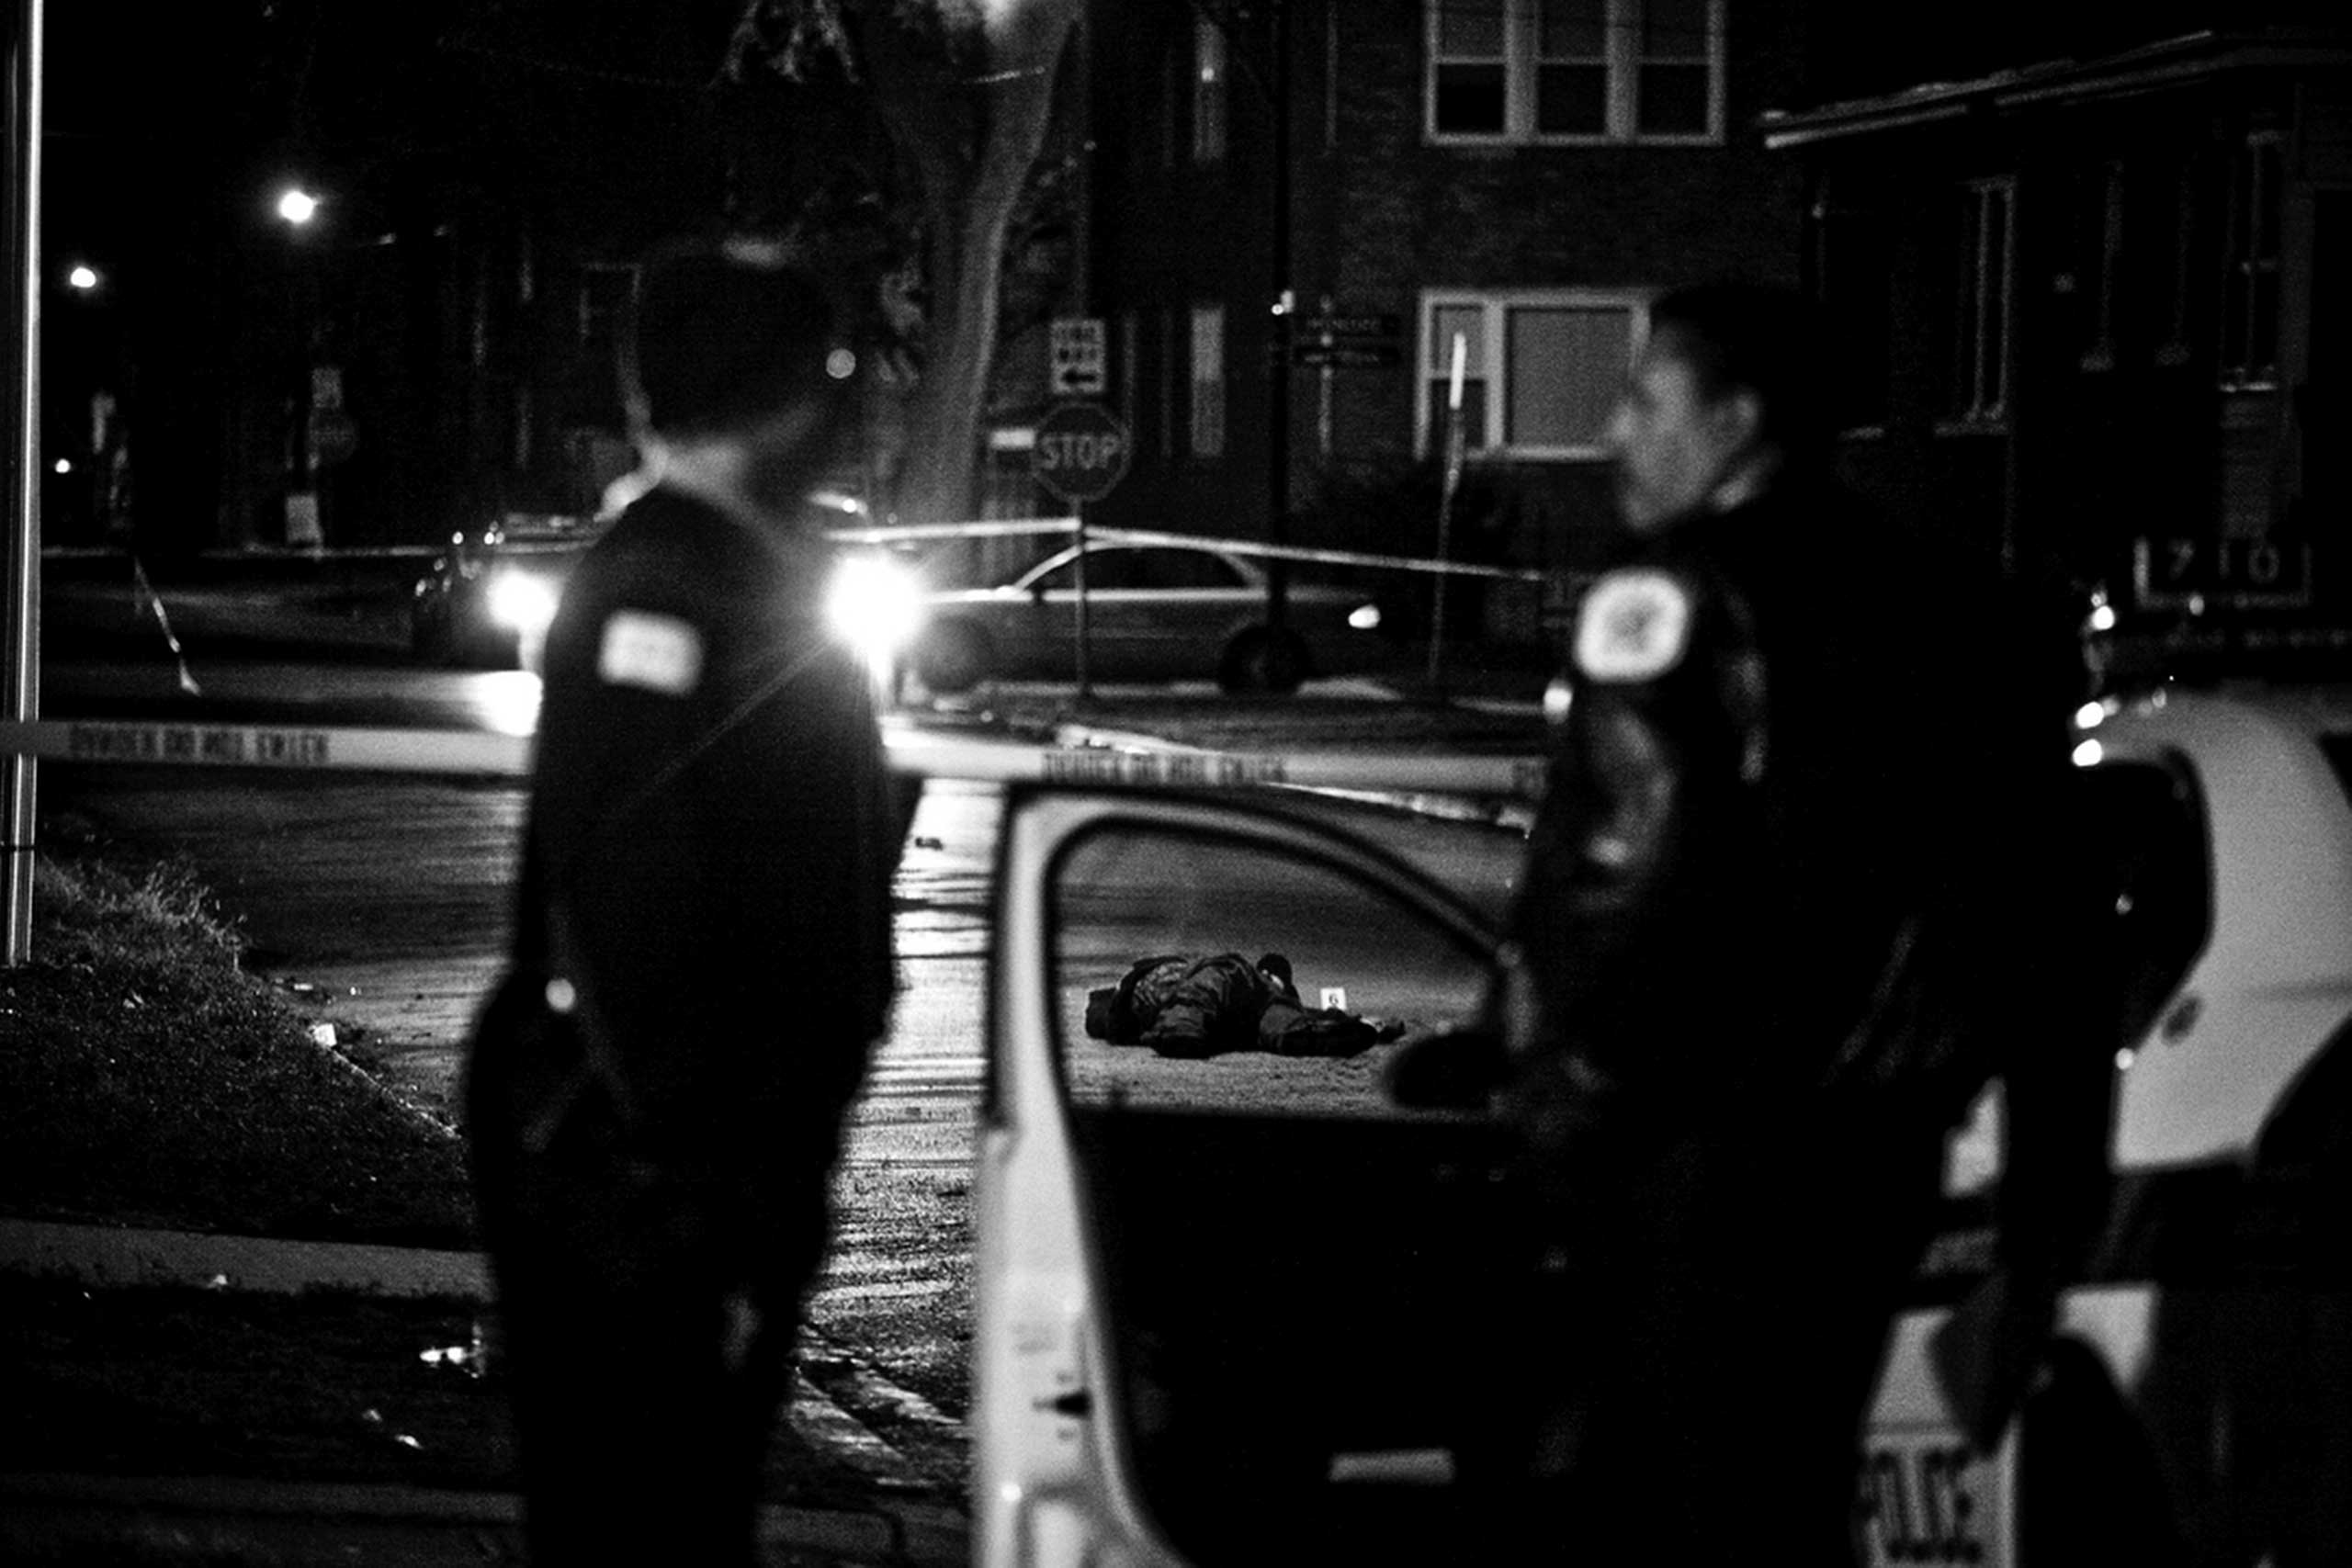 Arthur Burgess, 19, of the 500 block of East 32nd Street, was shot on a cold winter night and died at the scene. His friend was shot twice but survived. Englewood, Chicago, 2009.